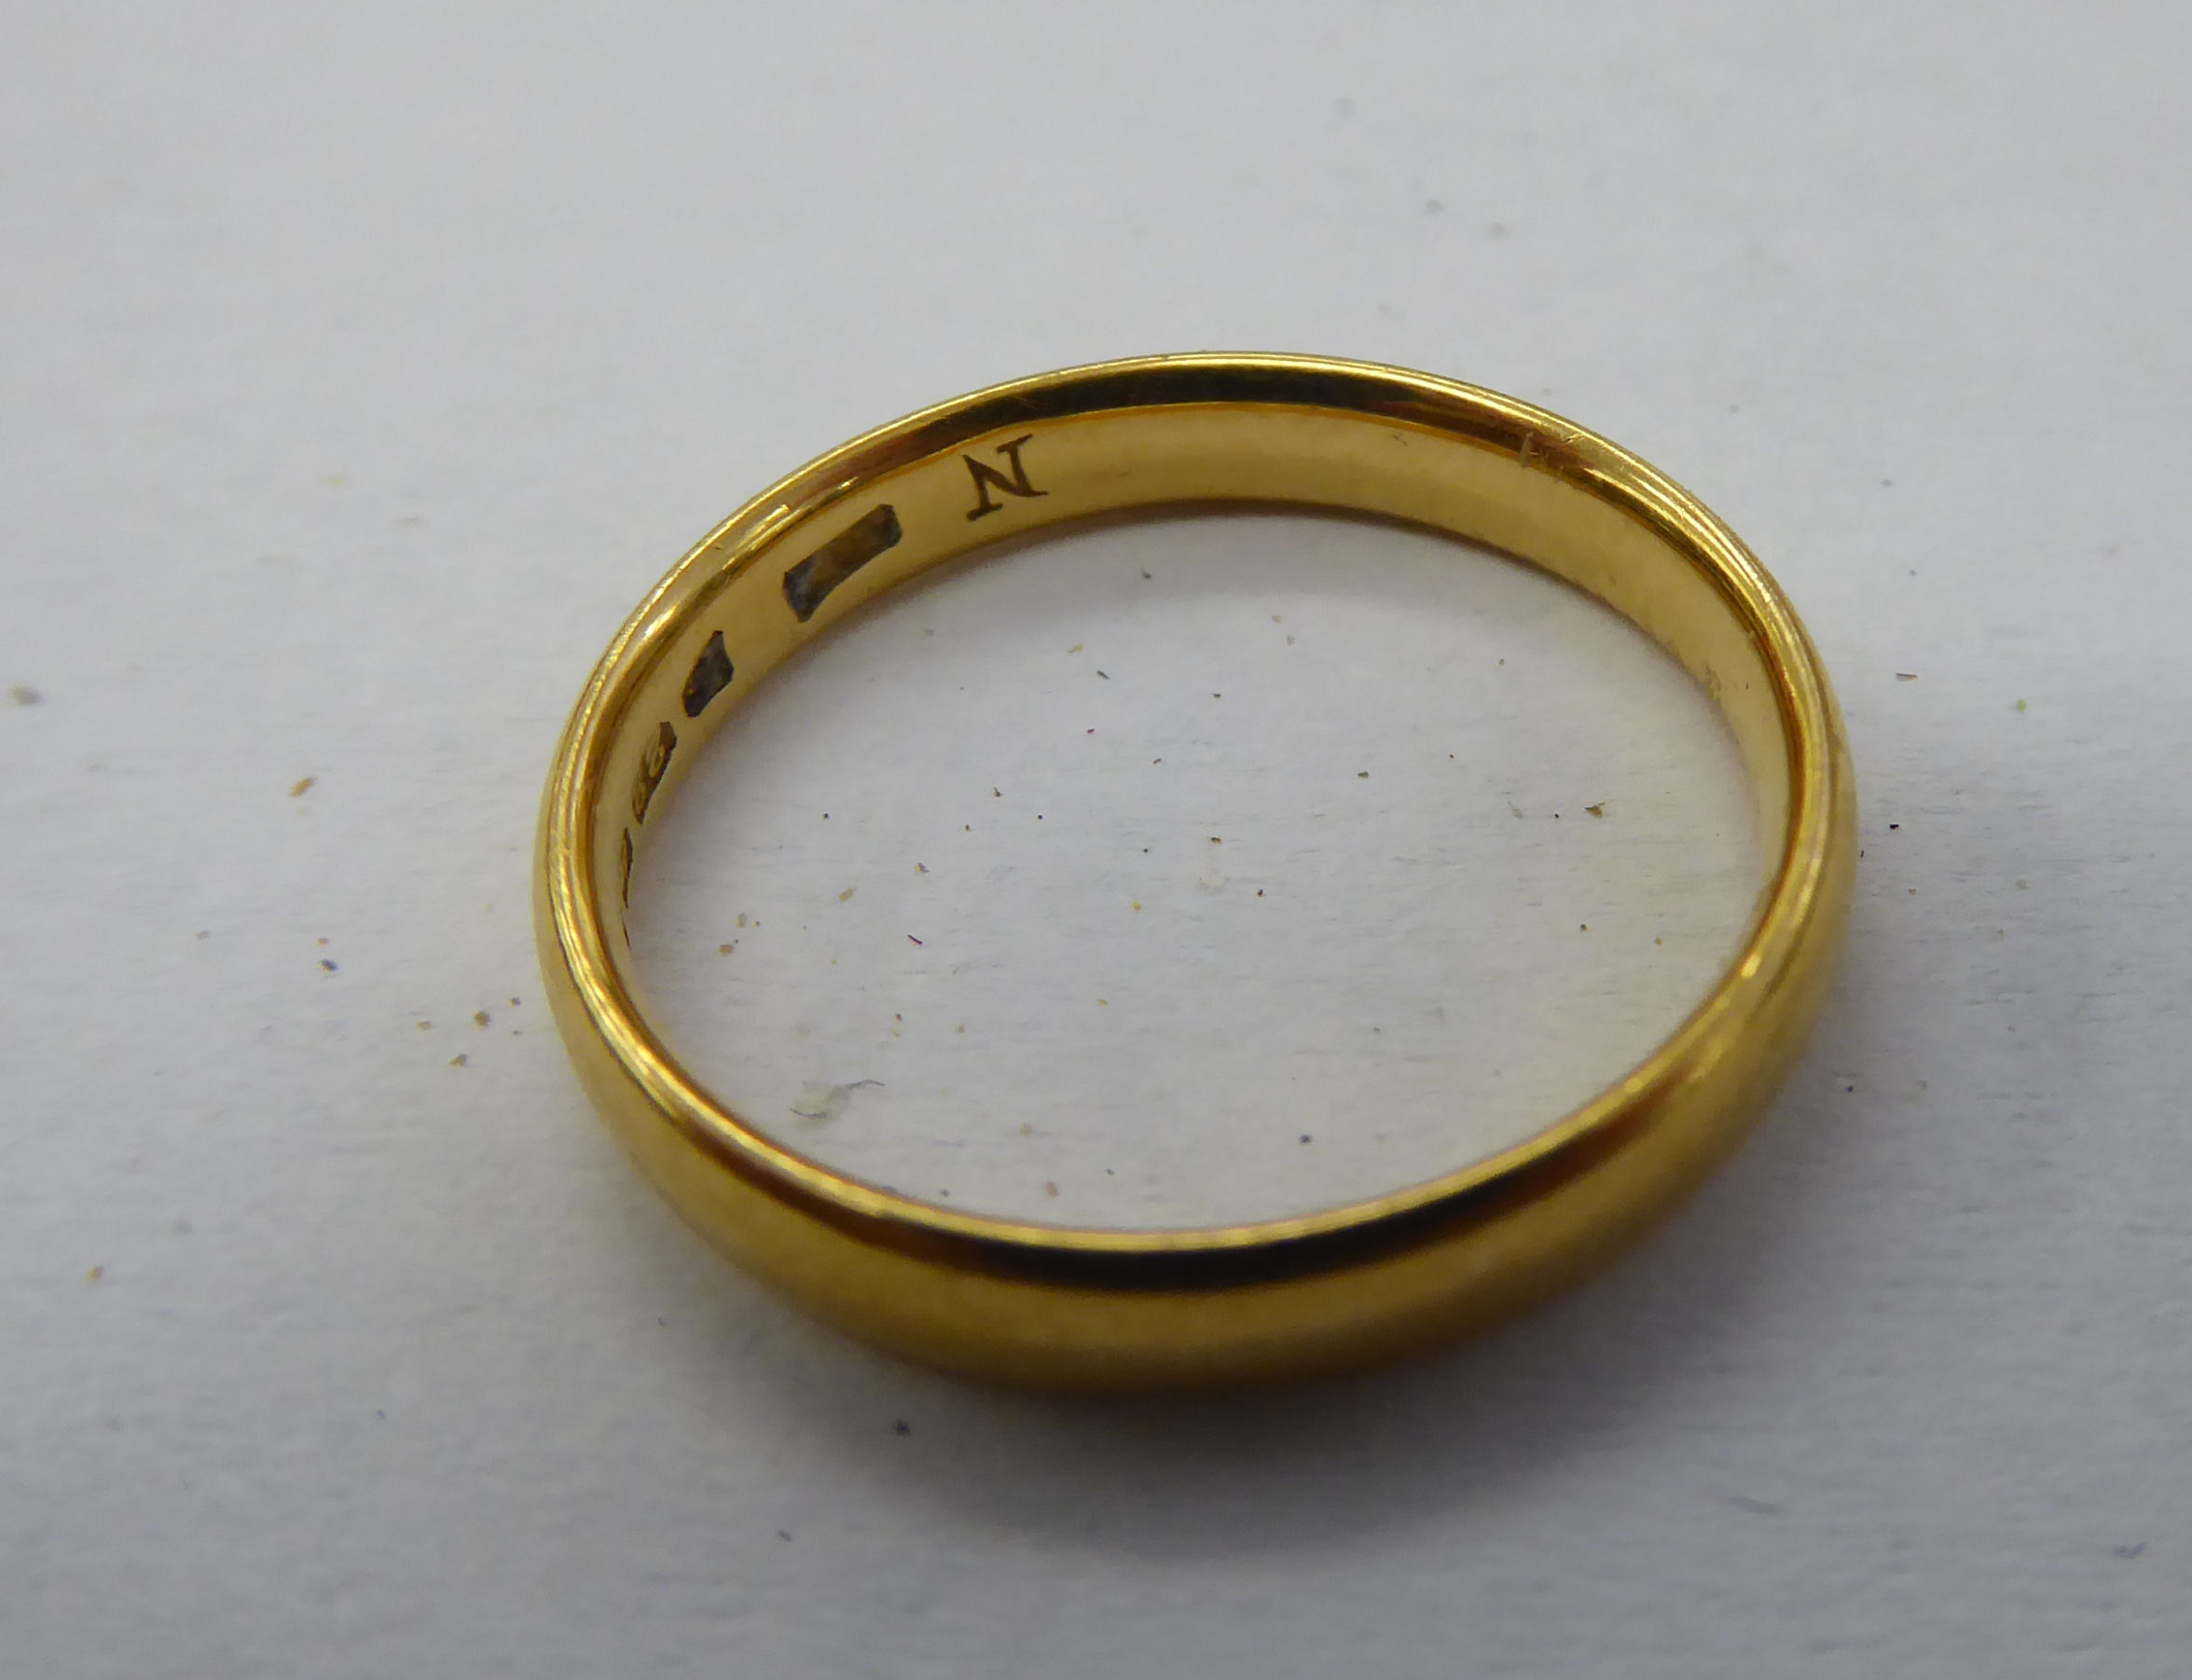 Lot 38 - A 22ct gold wedding ring 11